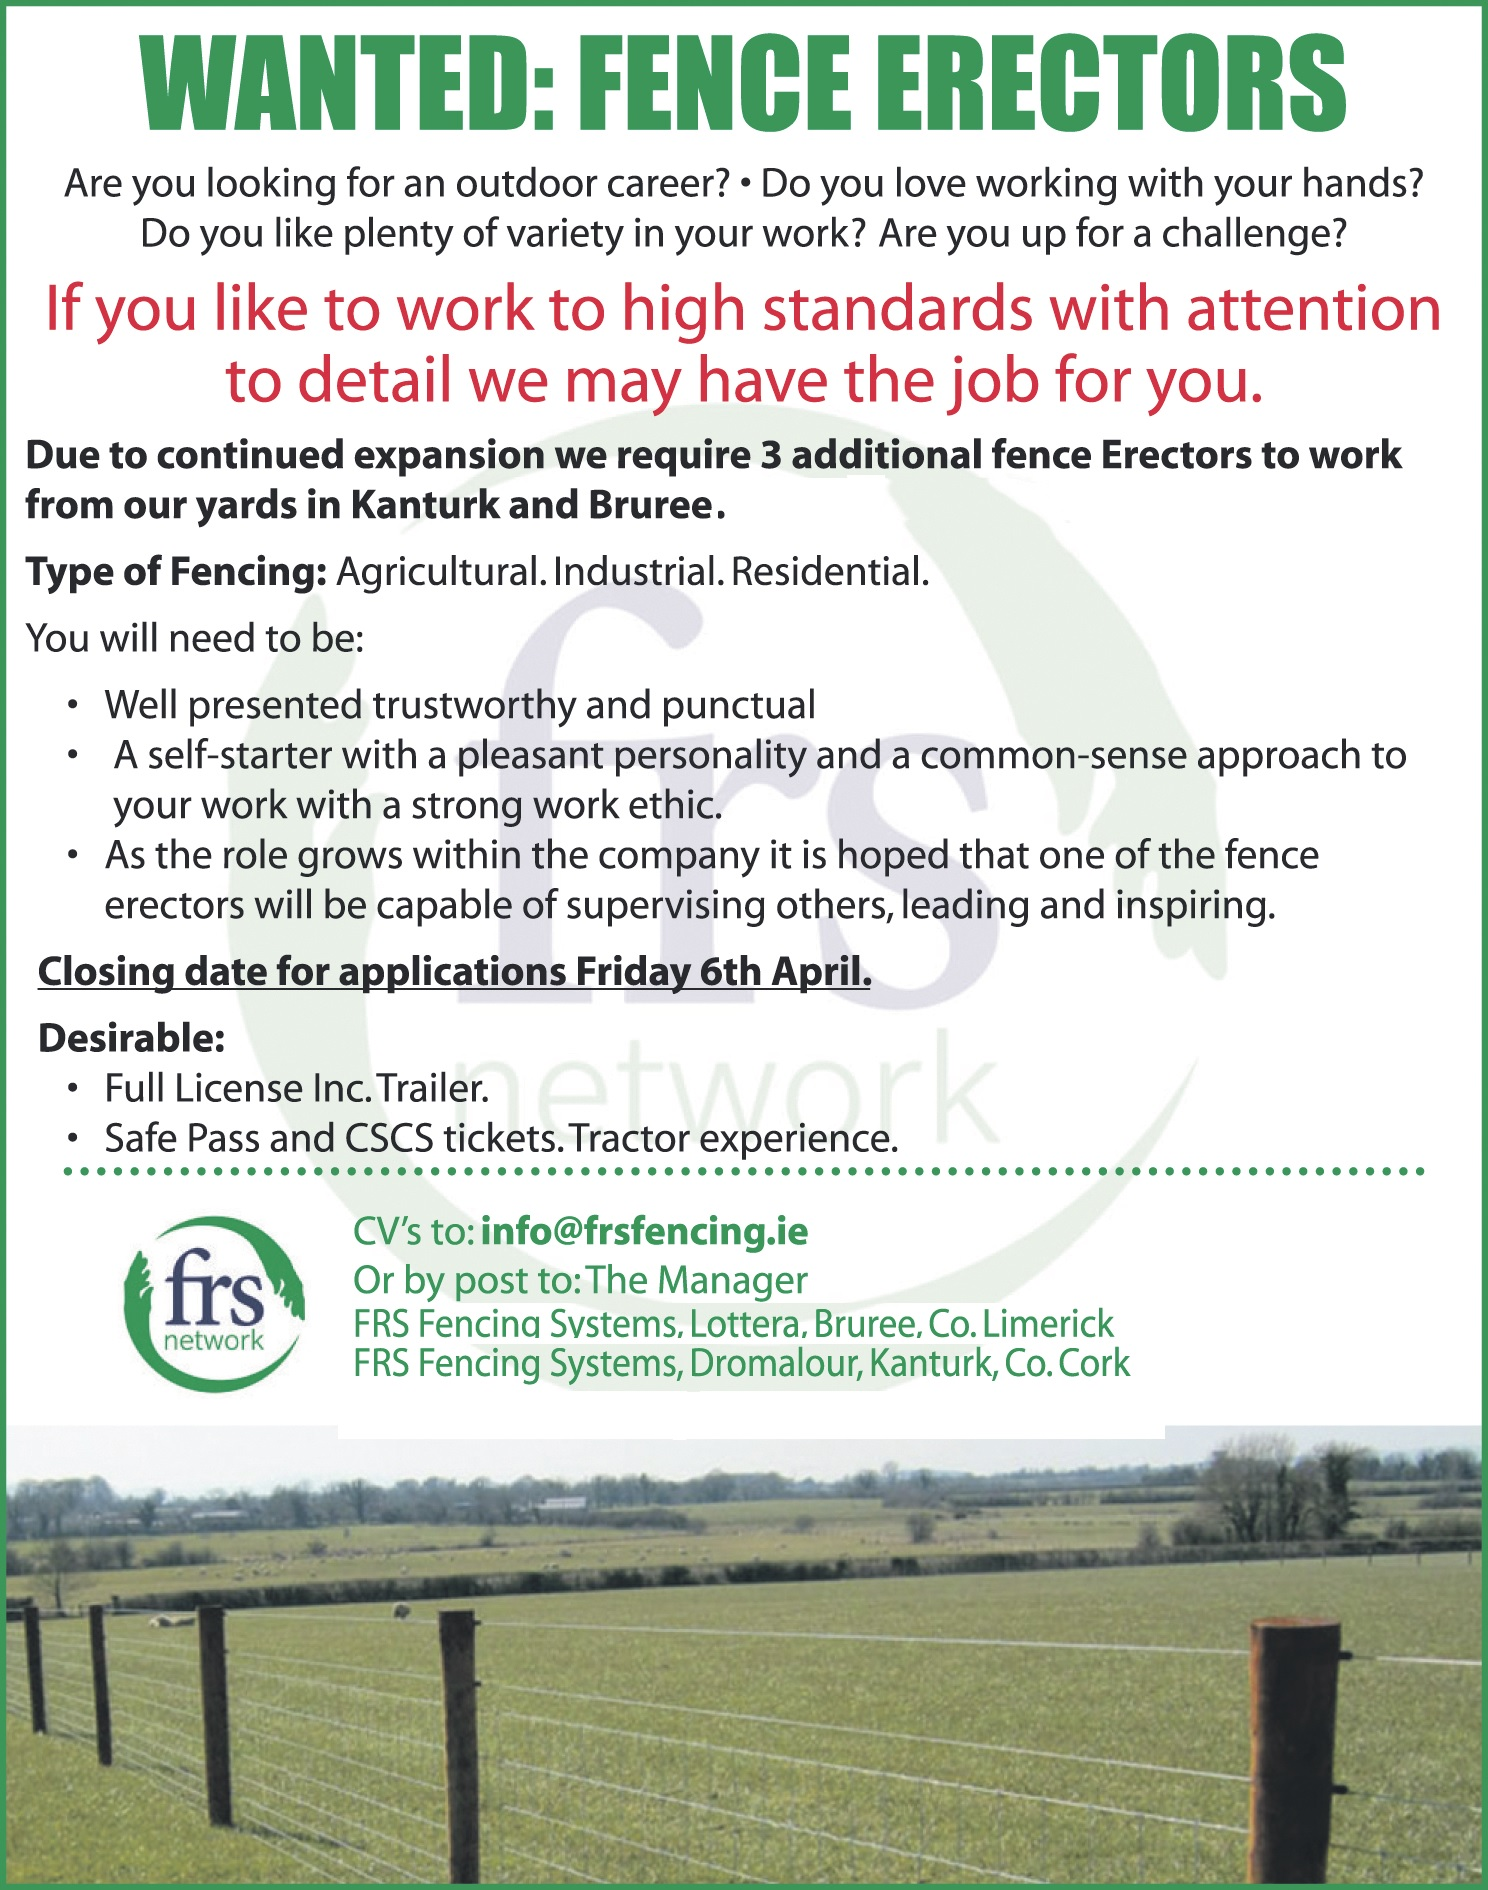 wanted: fence erectors